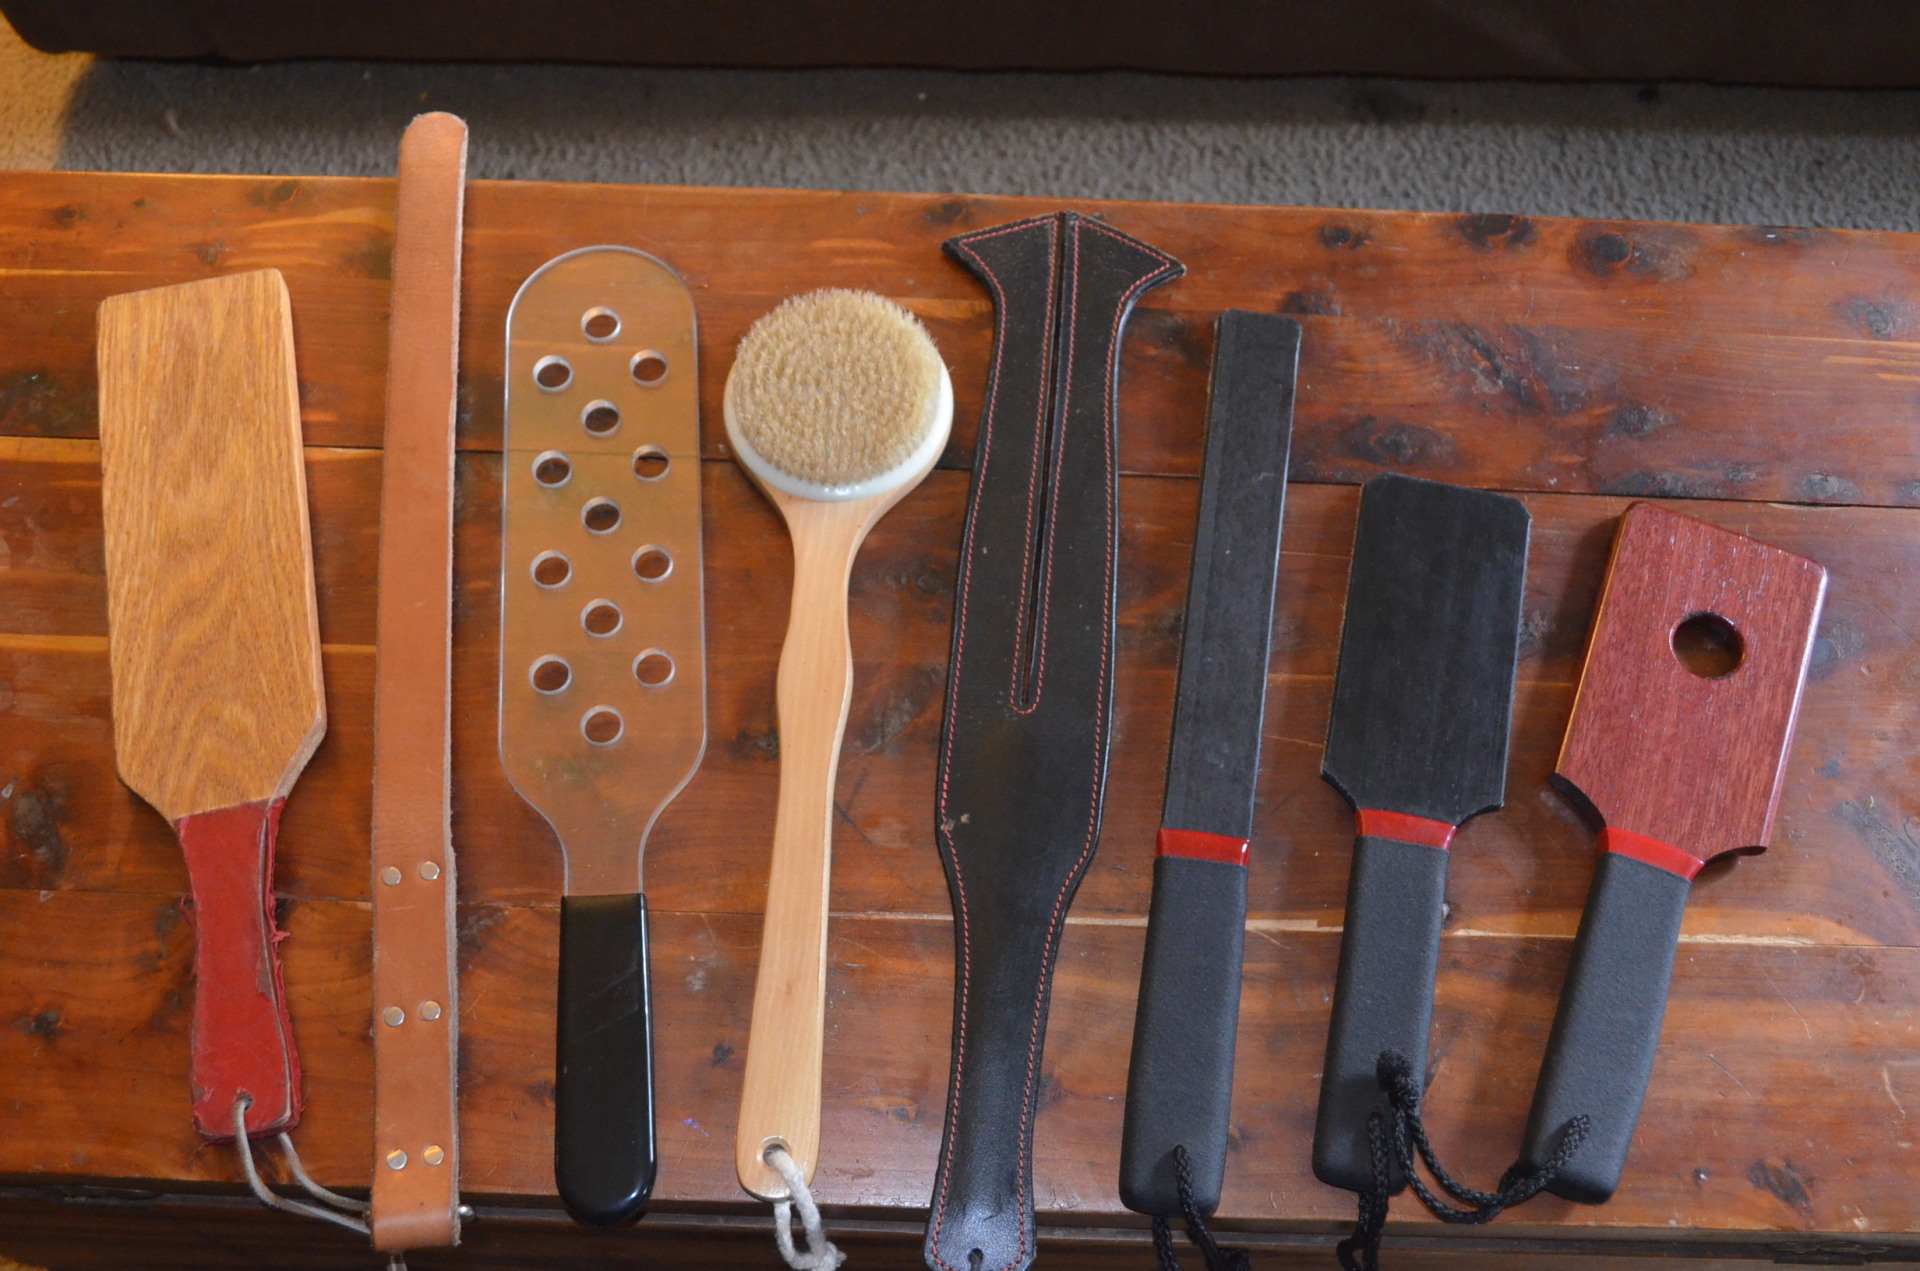 Stages of implements